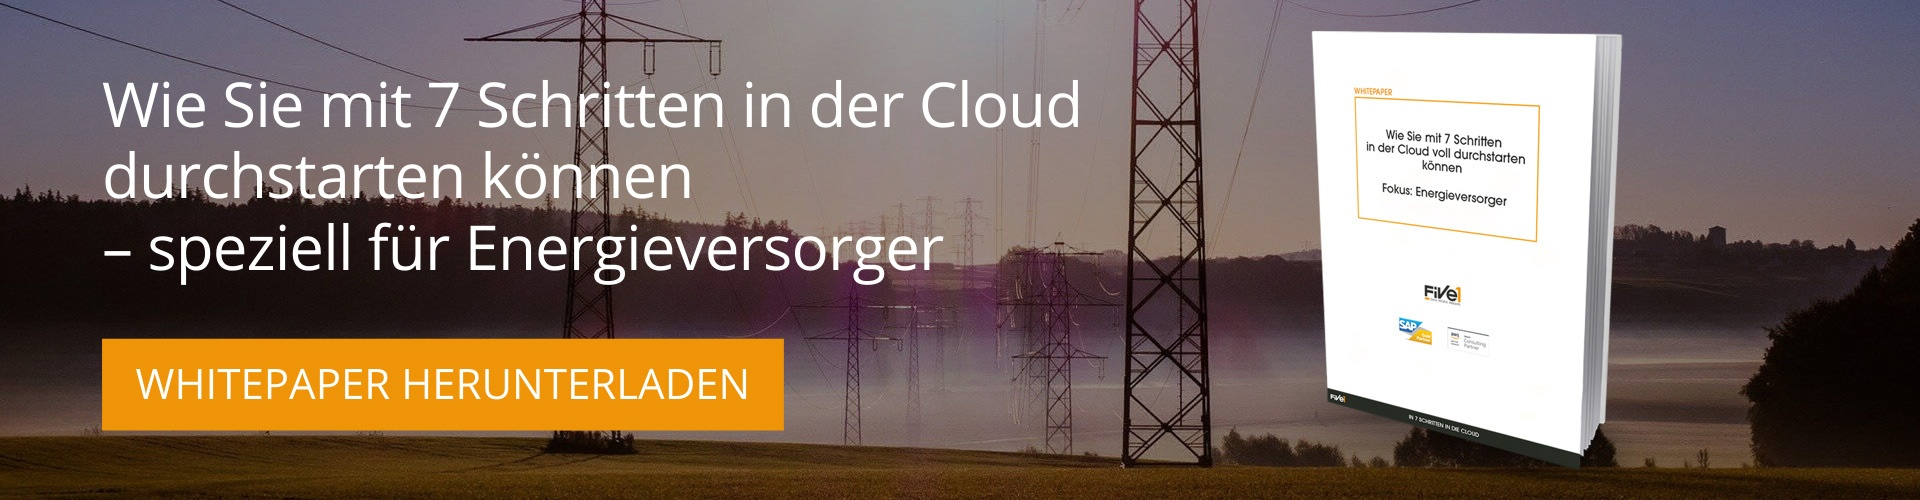 Whitepaper Cloud für Energieversorger